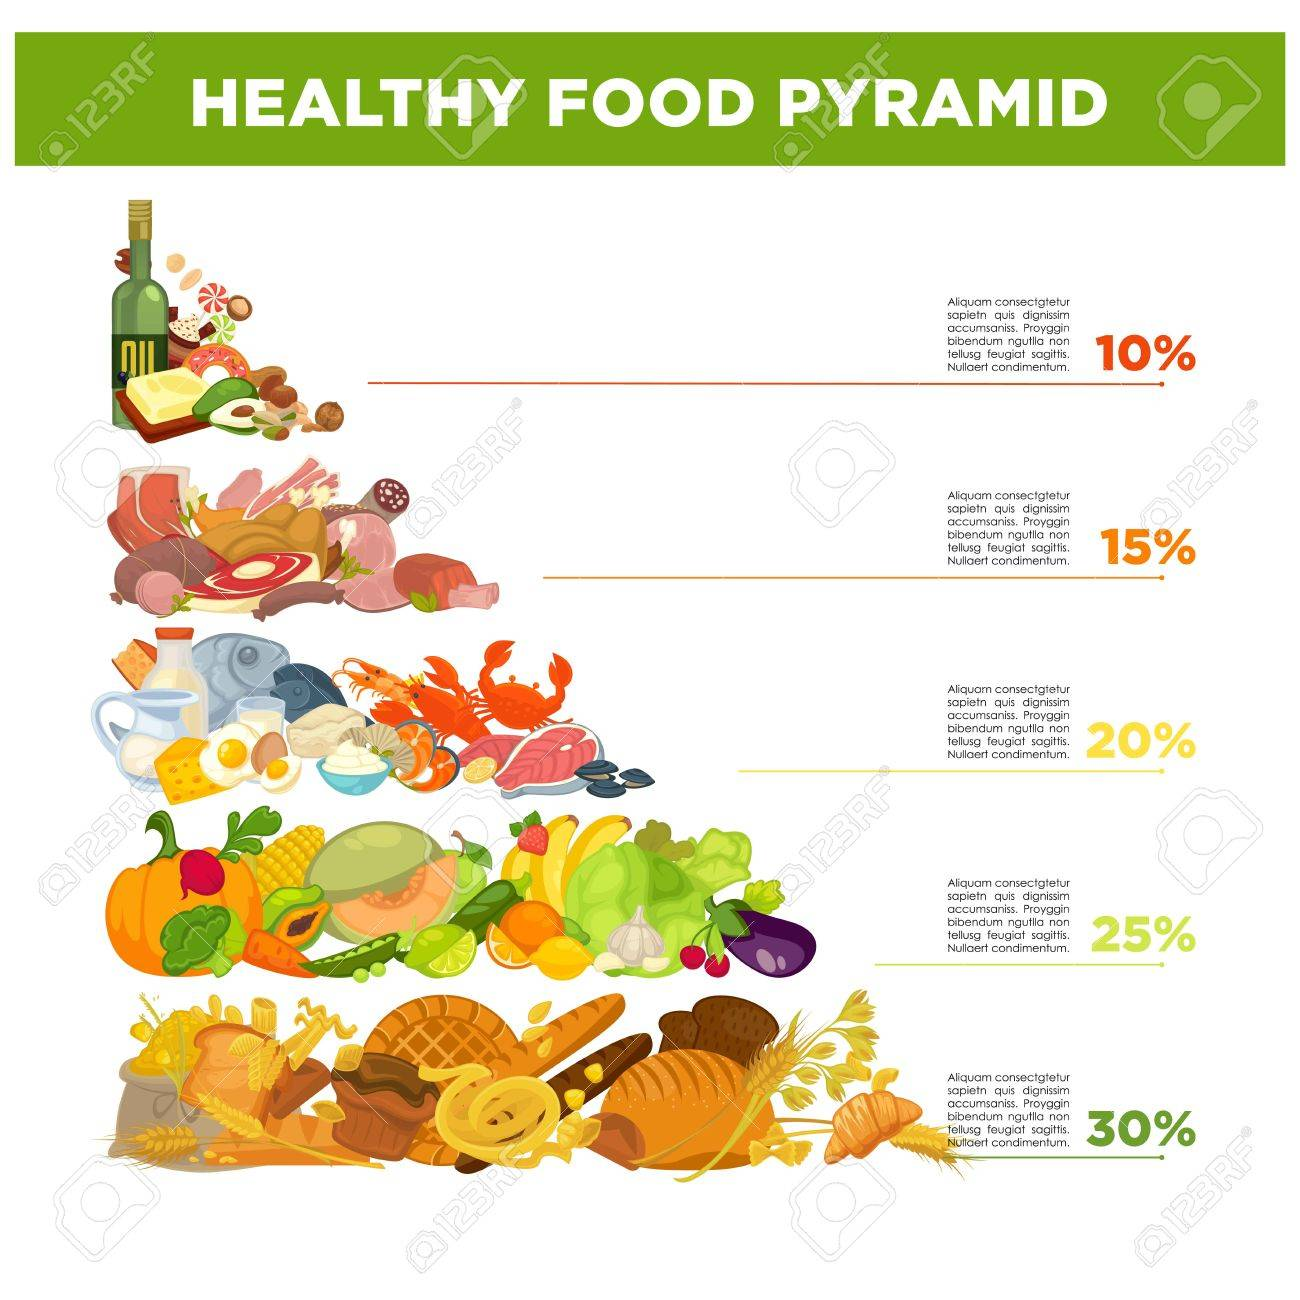 healthy food pyramid with percentage and small description used